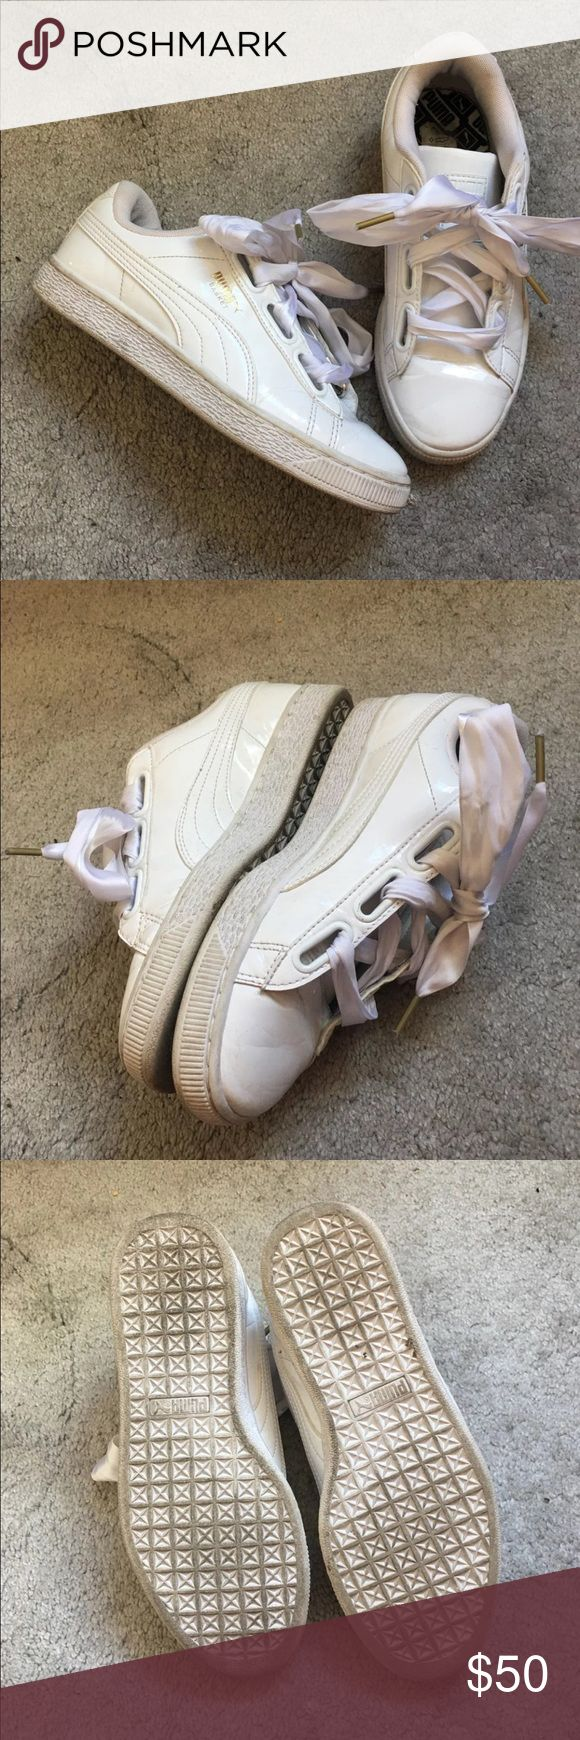 PUMA Basket Sneakers Gently worn a few times, there's creasing in the toe from wear. Please ask any questions before purchasing. Puma Shoes Sneakers